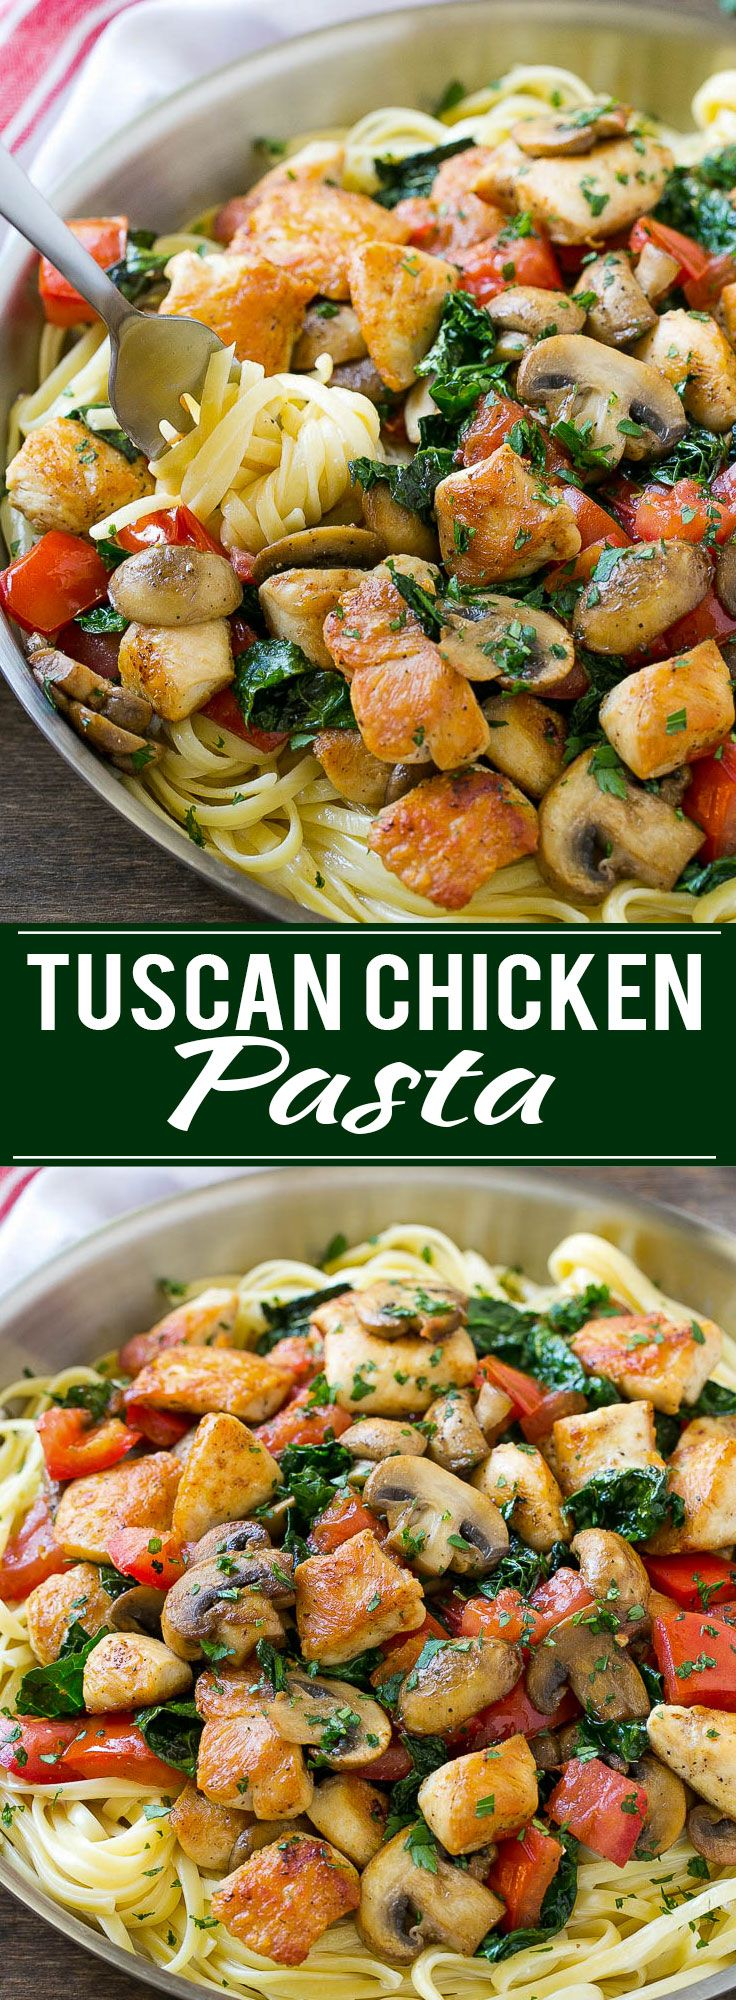 This recipe for Tuscan chicken pasta is creamy pasta topped with seared chicken, tomatoes, kale and mushrooms. An easy and hearty dinner that's ready in no time! More